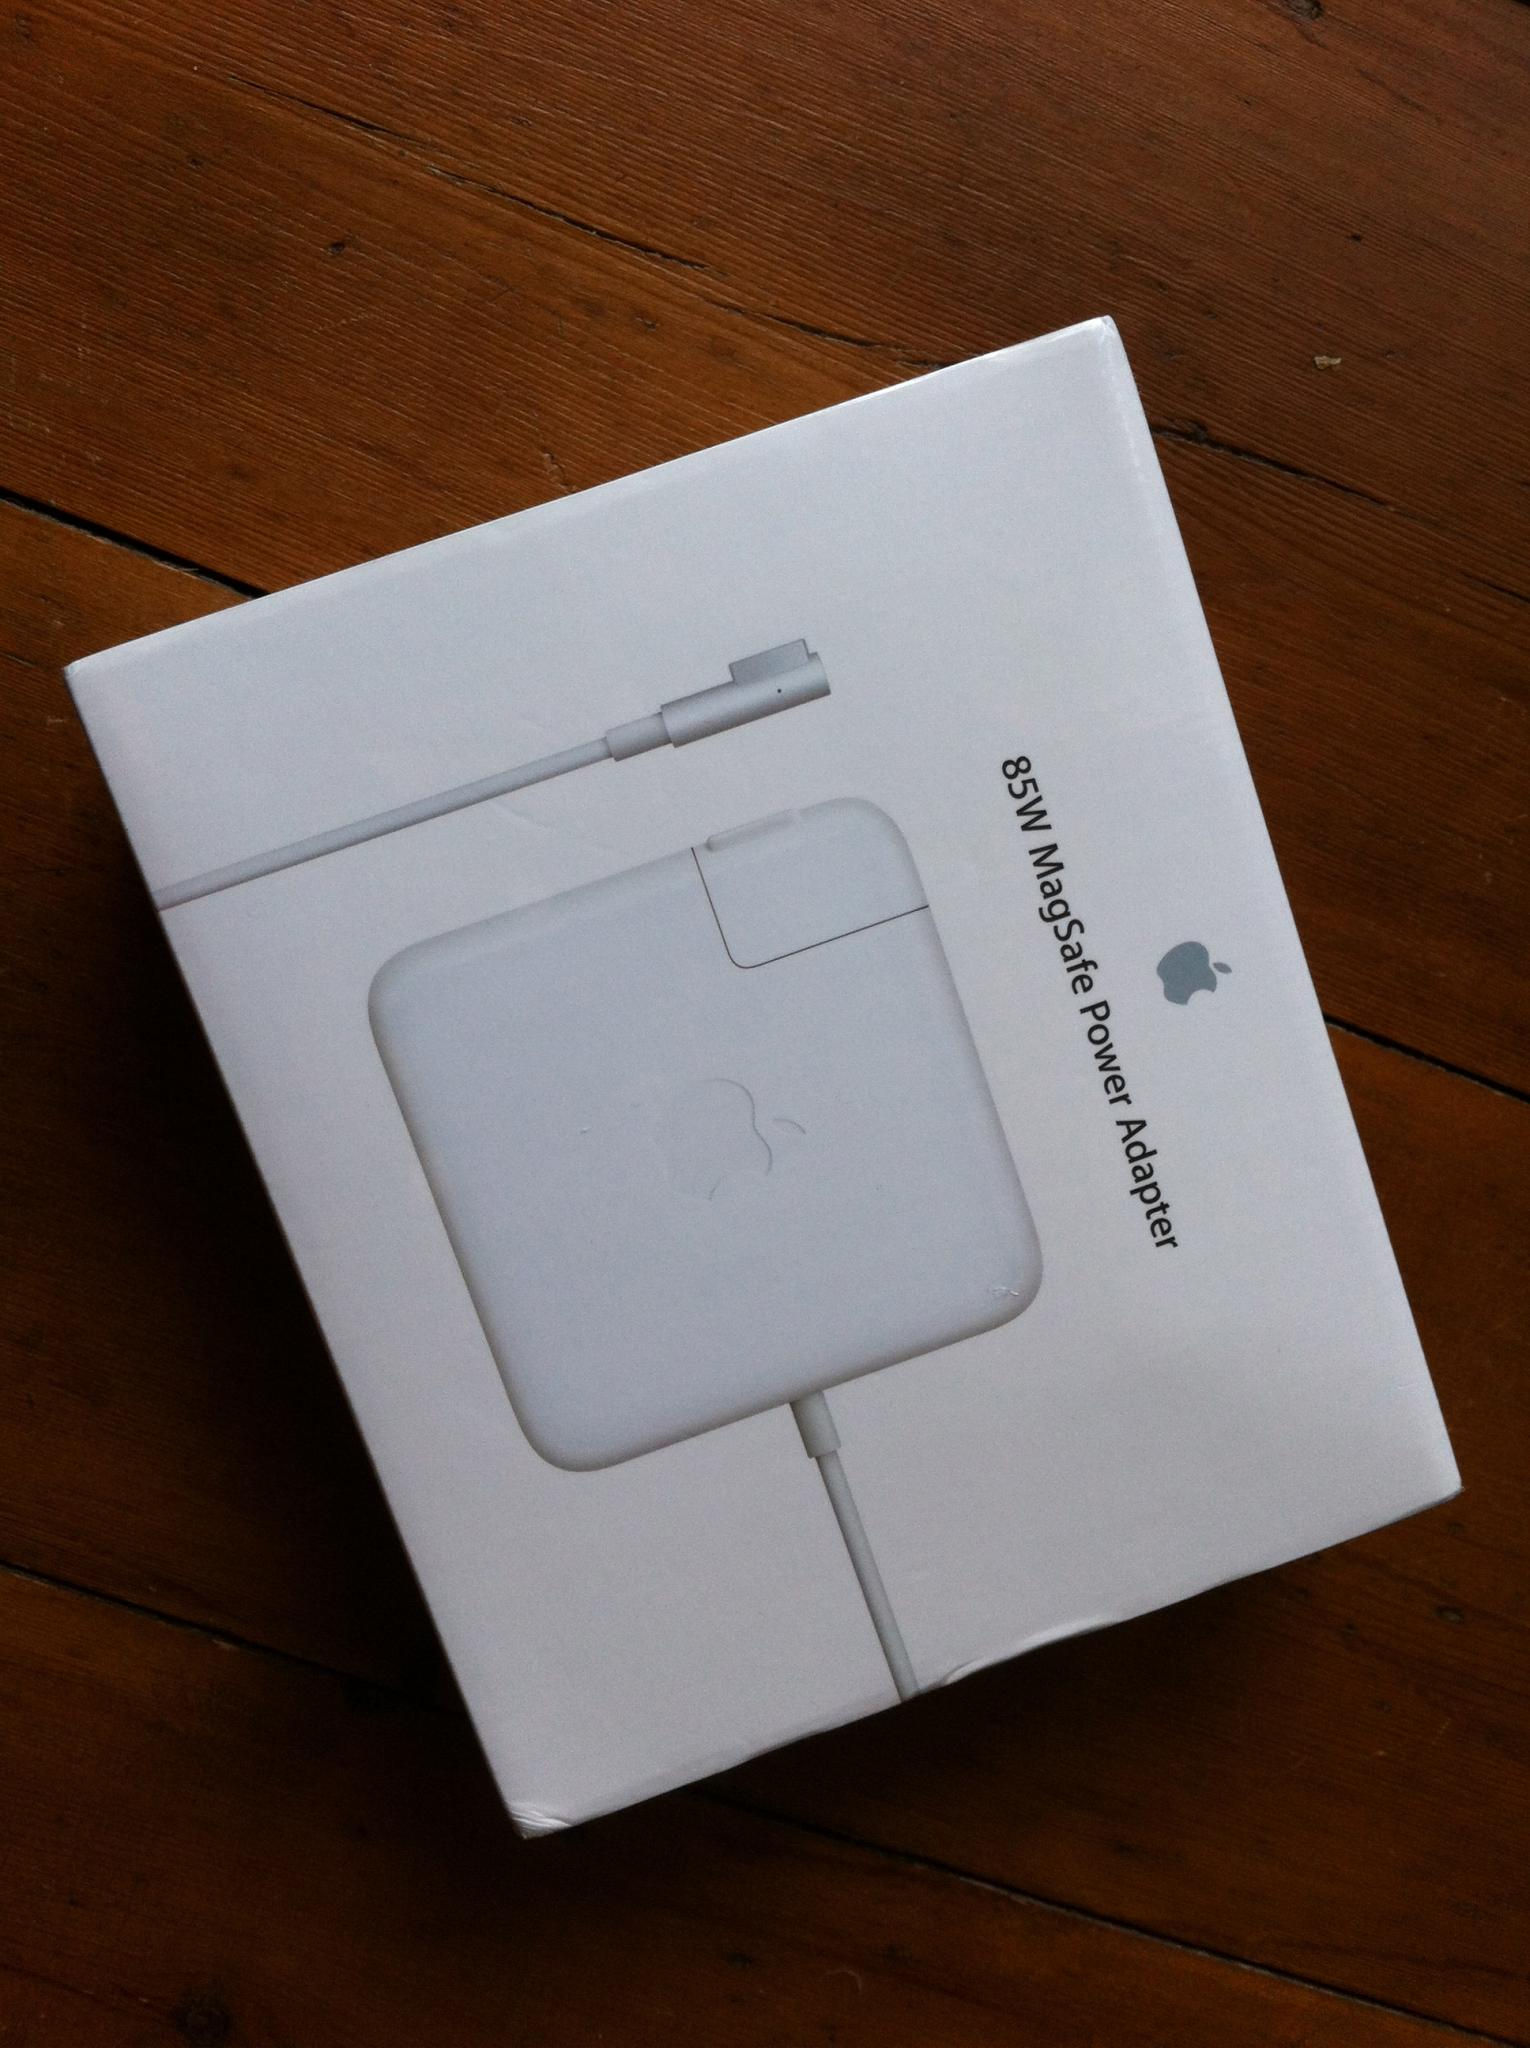 For Sale Ot Macbook Pro Charger Vitra Office Chair